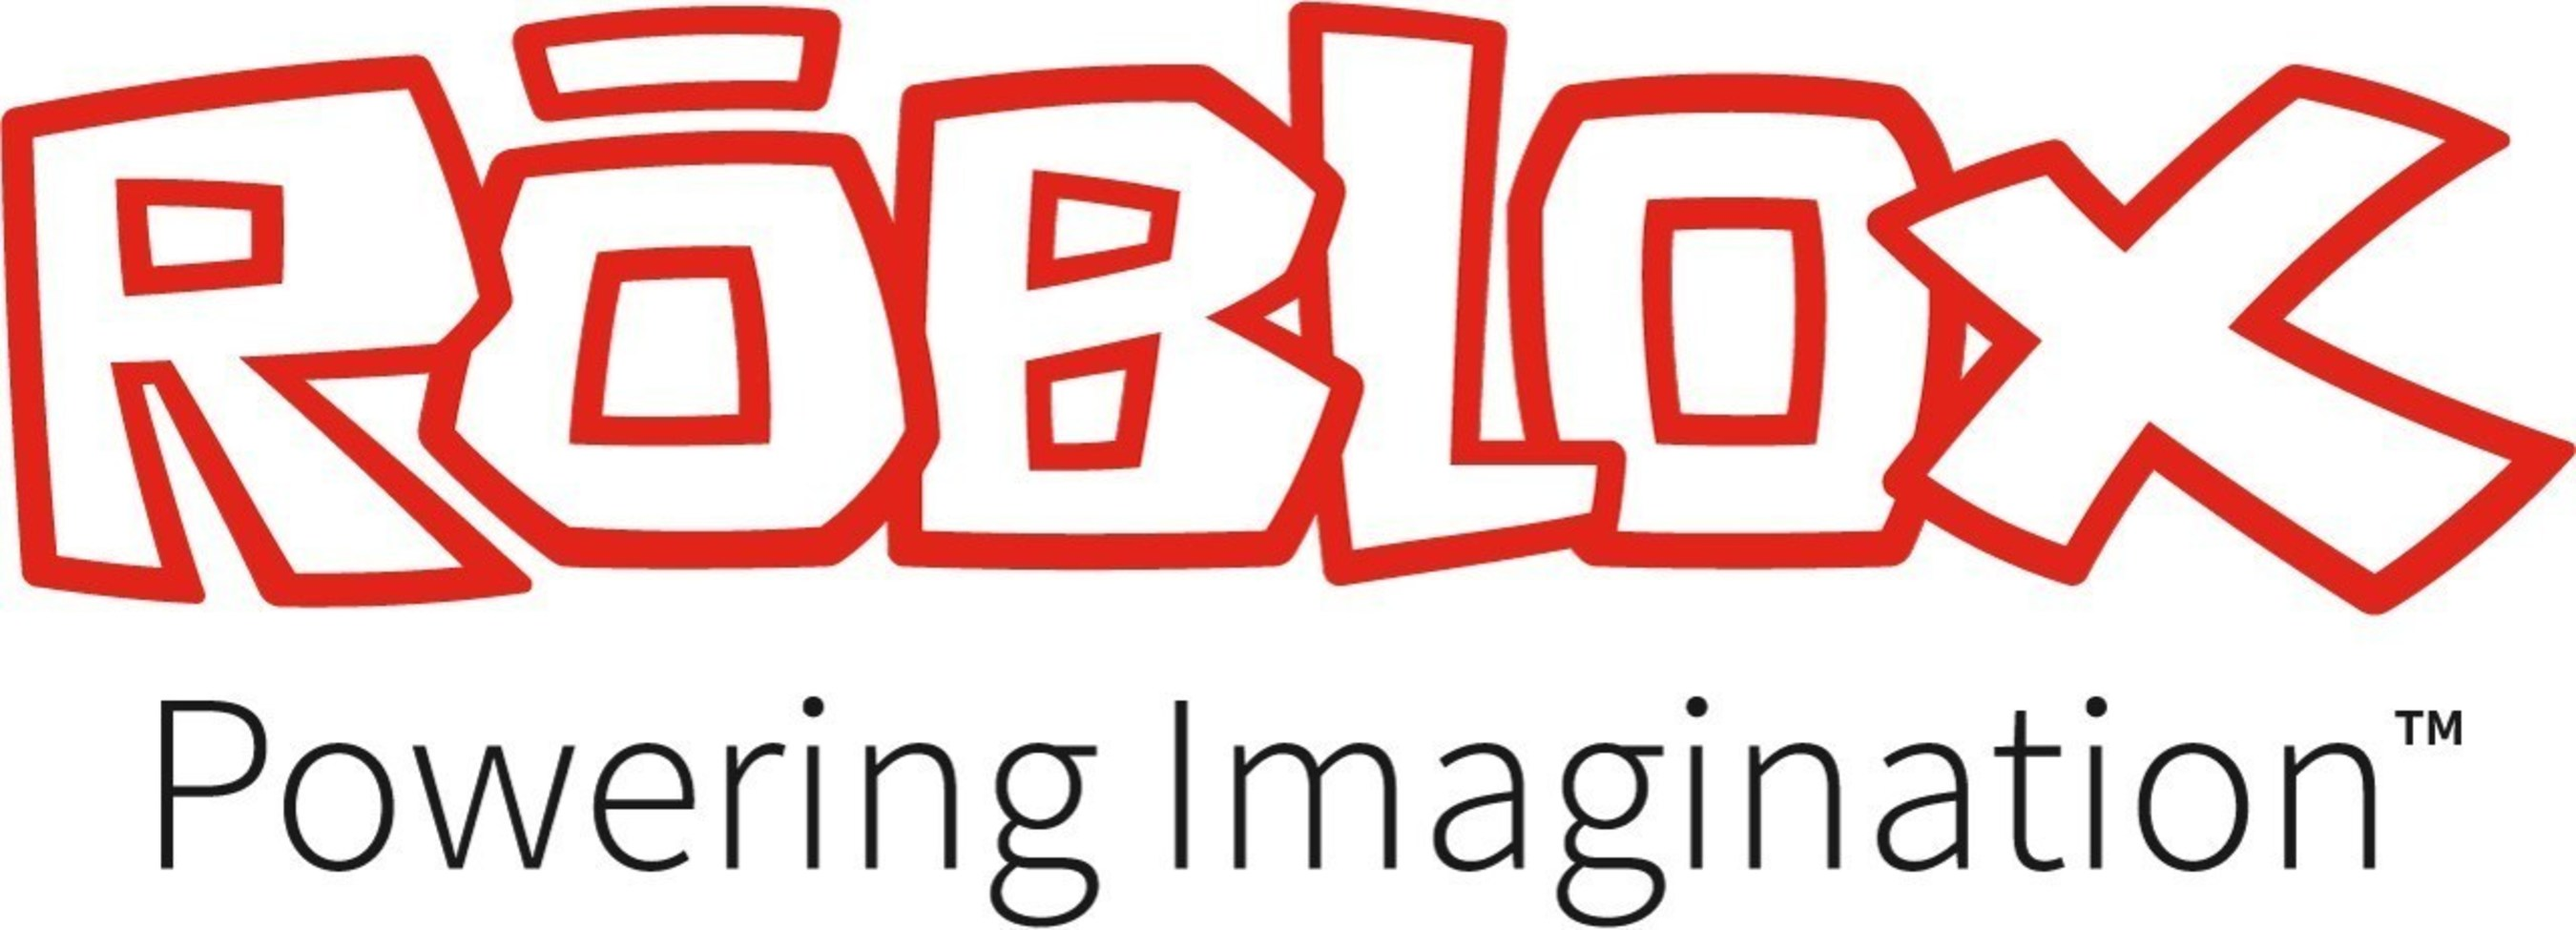 ROBLOX Expands Powering Imagination™ Vision by Launching